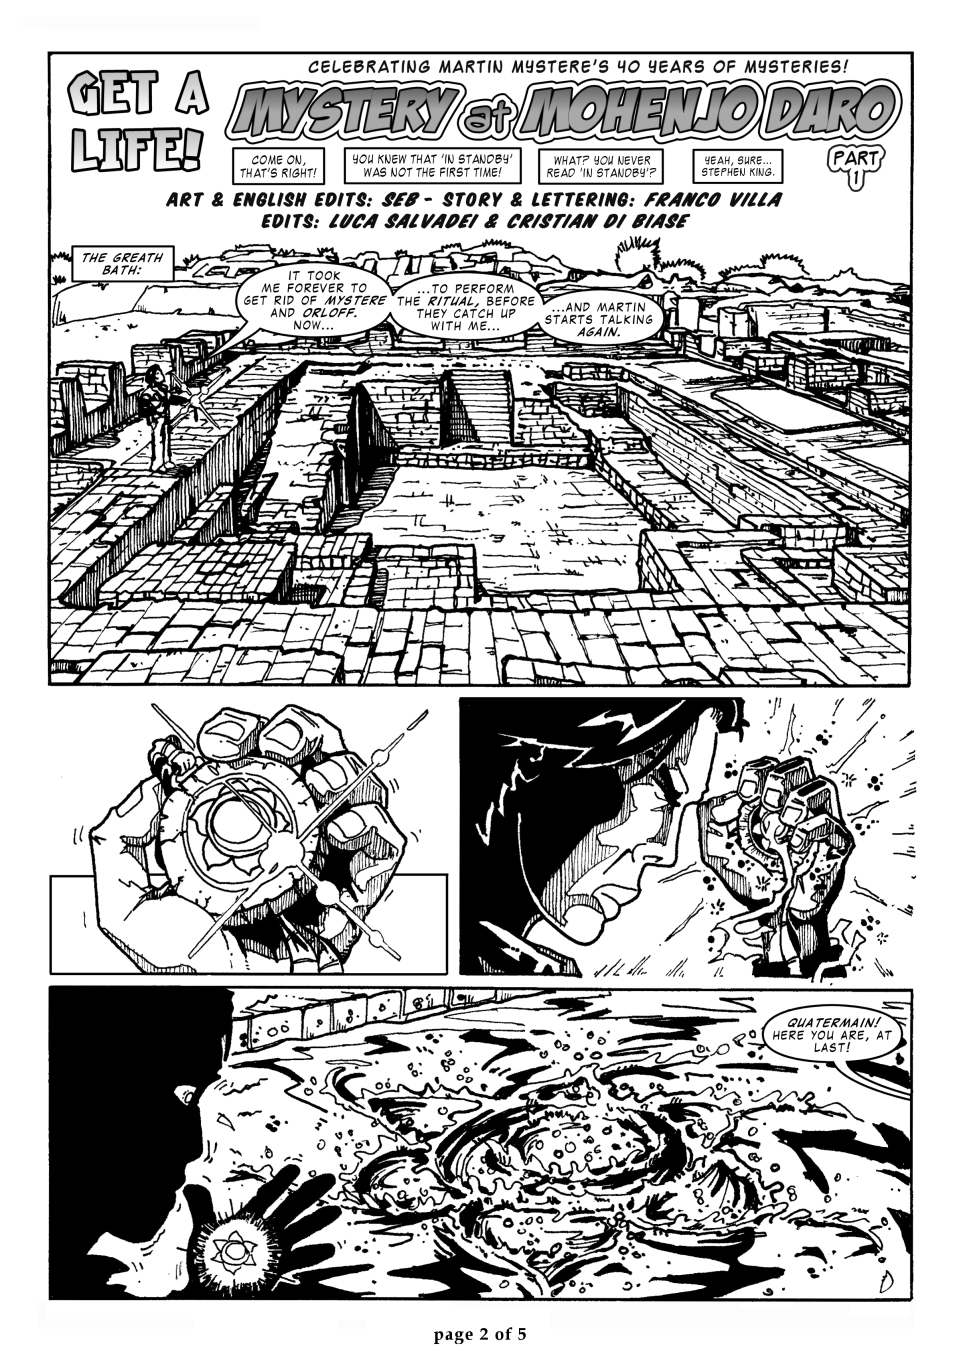 Get A Life 15 - page 2